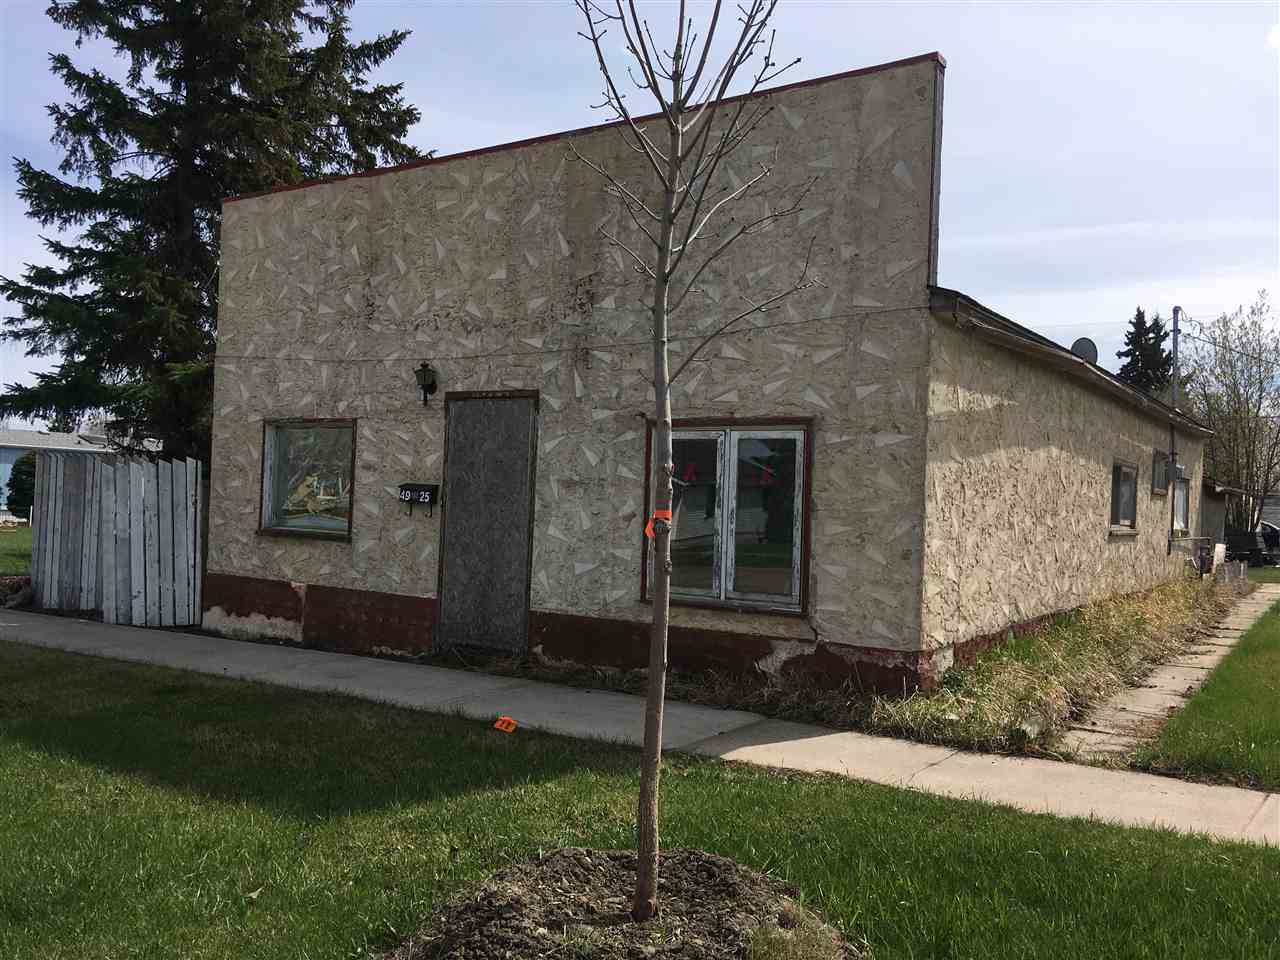 Affordable, 1266sq ft, 2 bedroom bungalow, close to shopping in Viking, AB. Open floorplan with large kitchen, livingroom, 4 pce bath and 2 bedrooms on main floor. Dugout is 5' tall with cement floor and sump pump. Hand made wooden cabinets add character to this spacious home. The oversized single garage on this large treed lot close to main street.